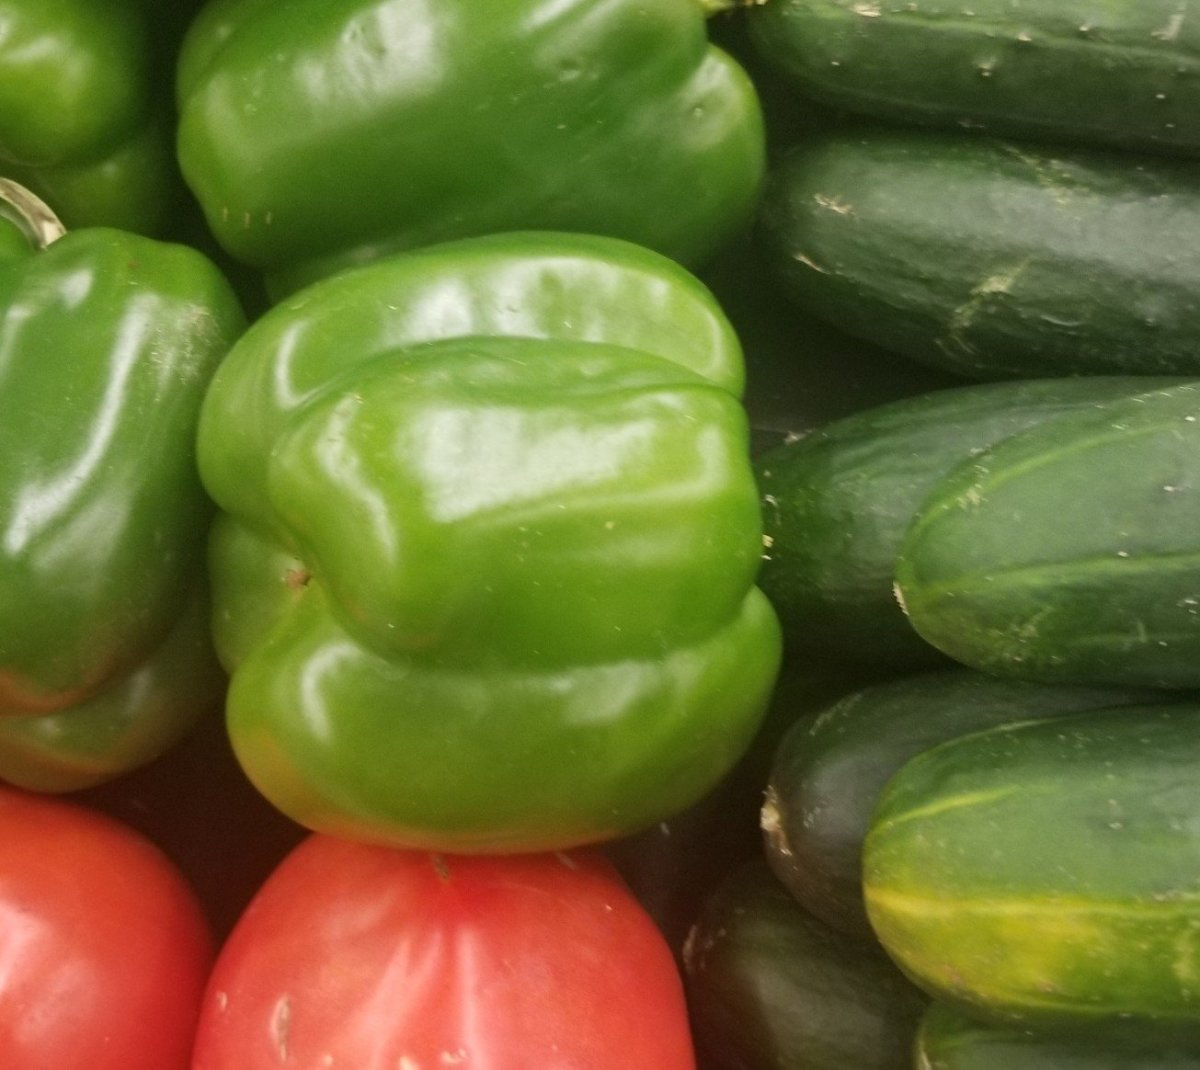 Easy Tricks for Getting Your Kids to Love Vegetables